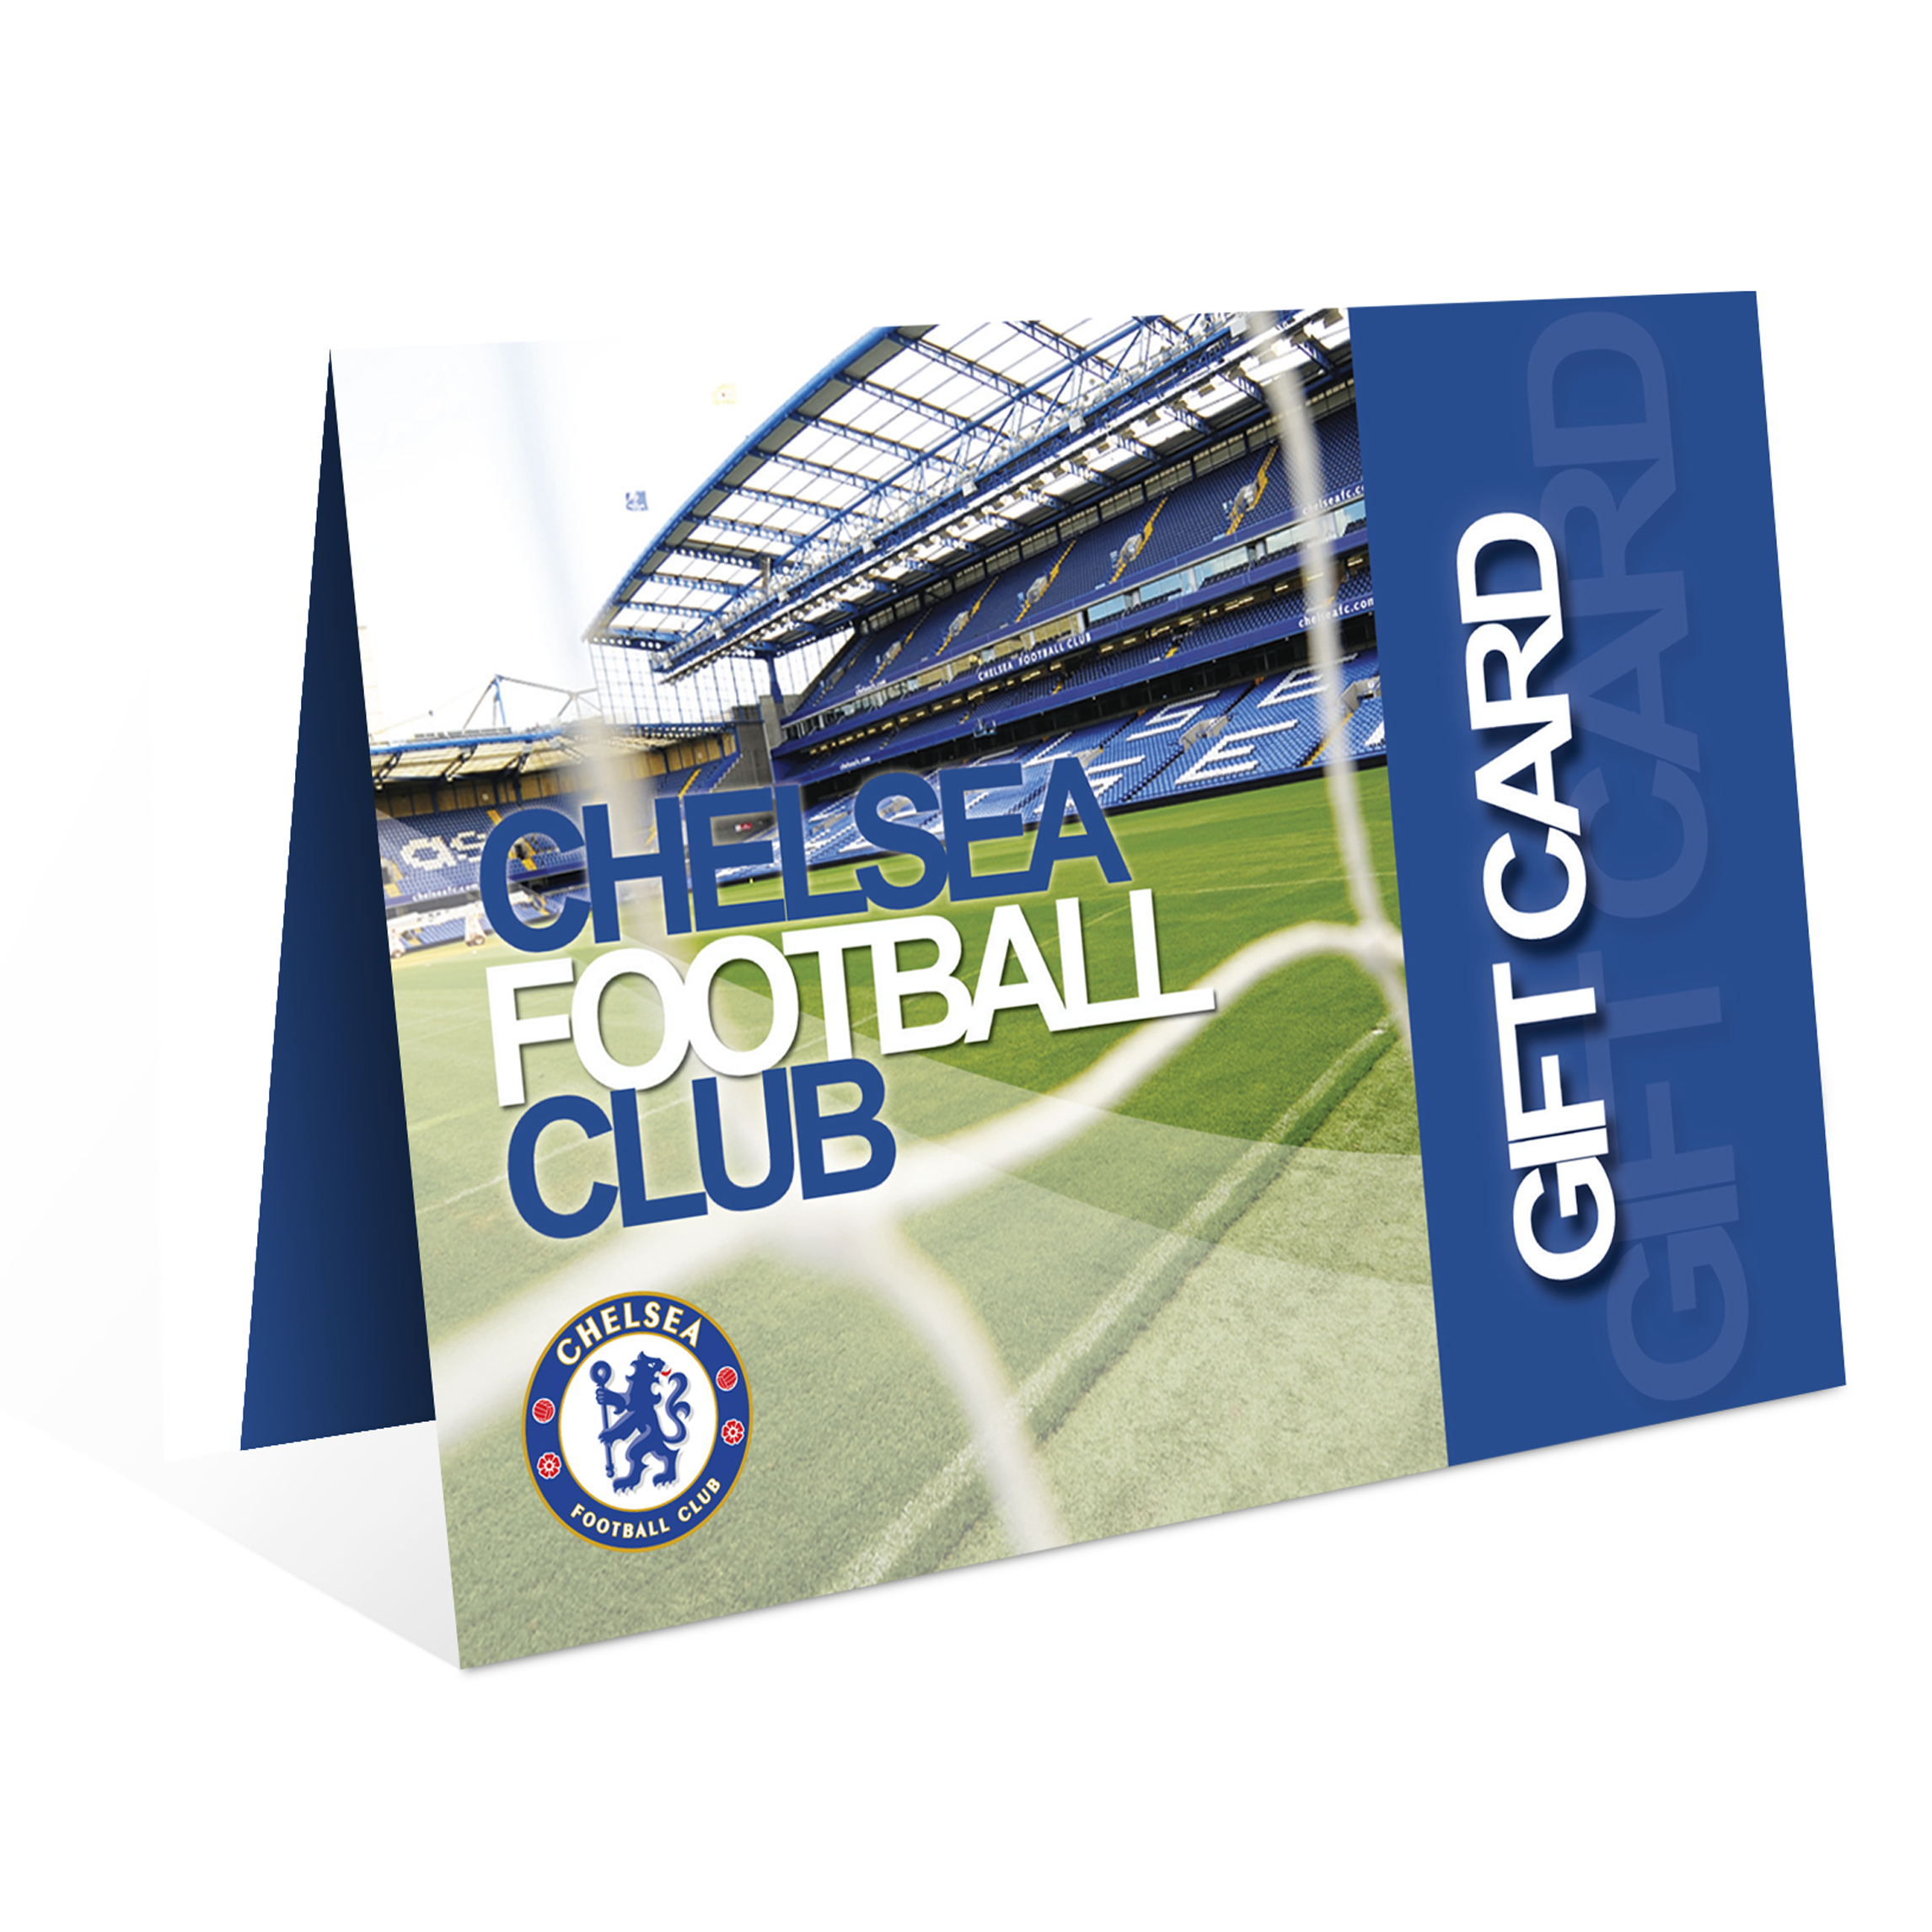 Chelsea Football Club Gift Card - Pitch £10